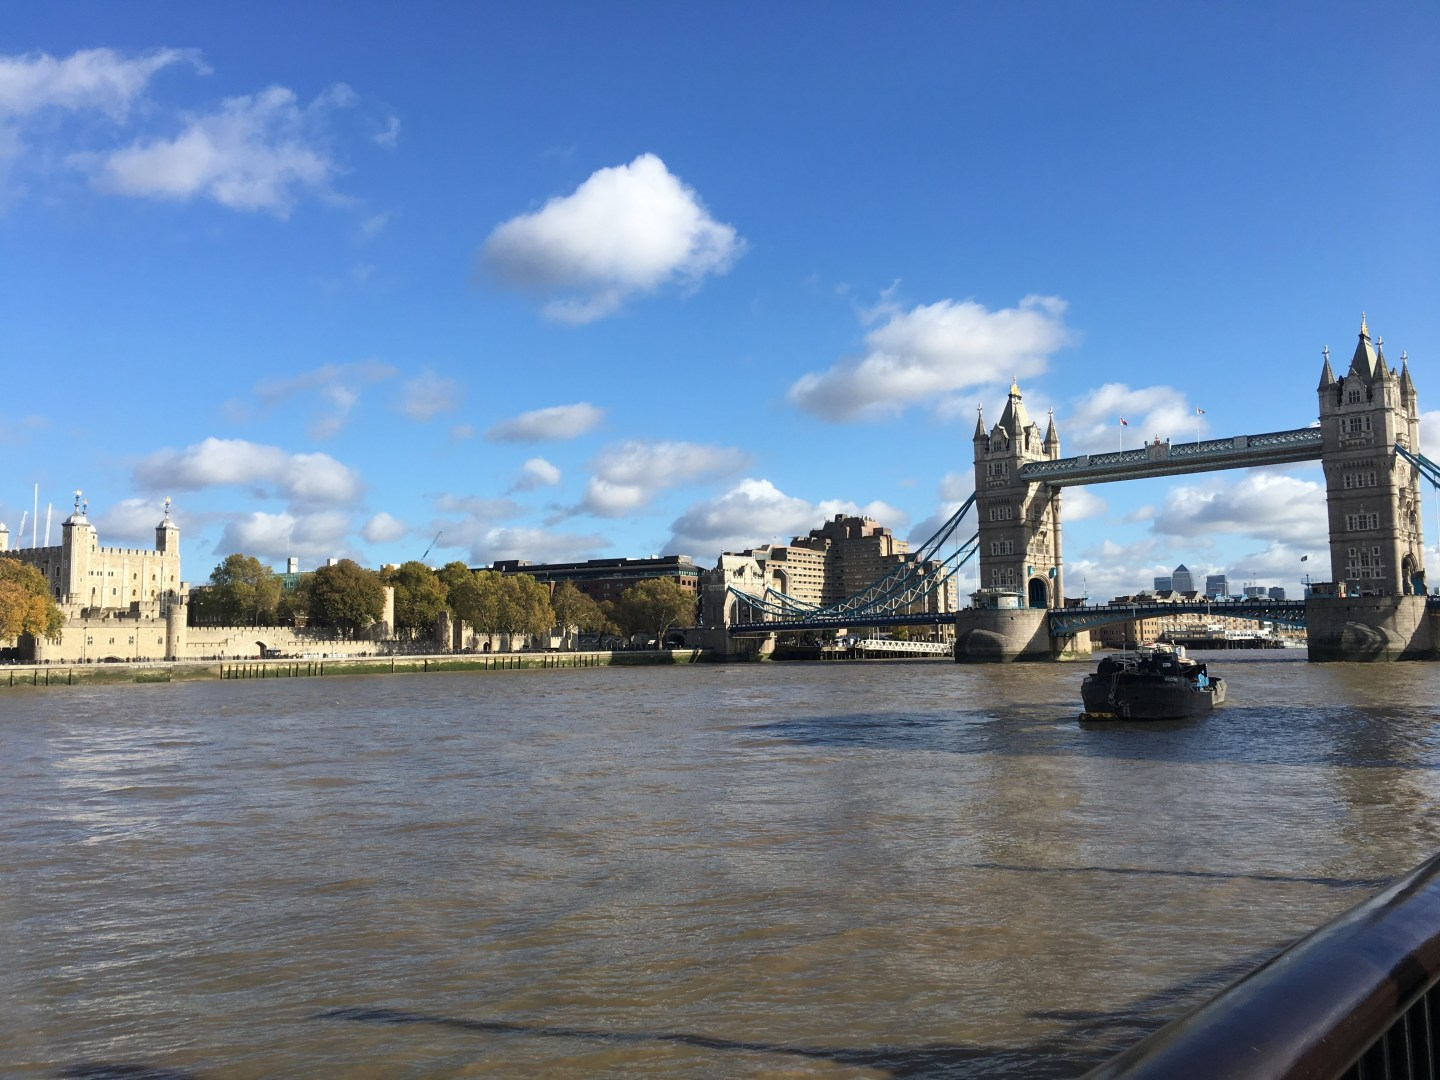 Travel Tips for Americans Visiting London from an American Expat